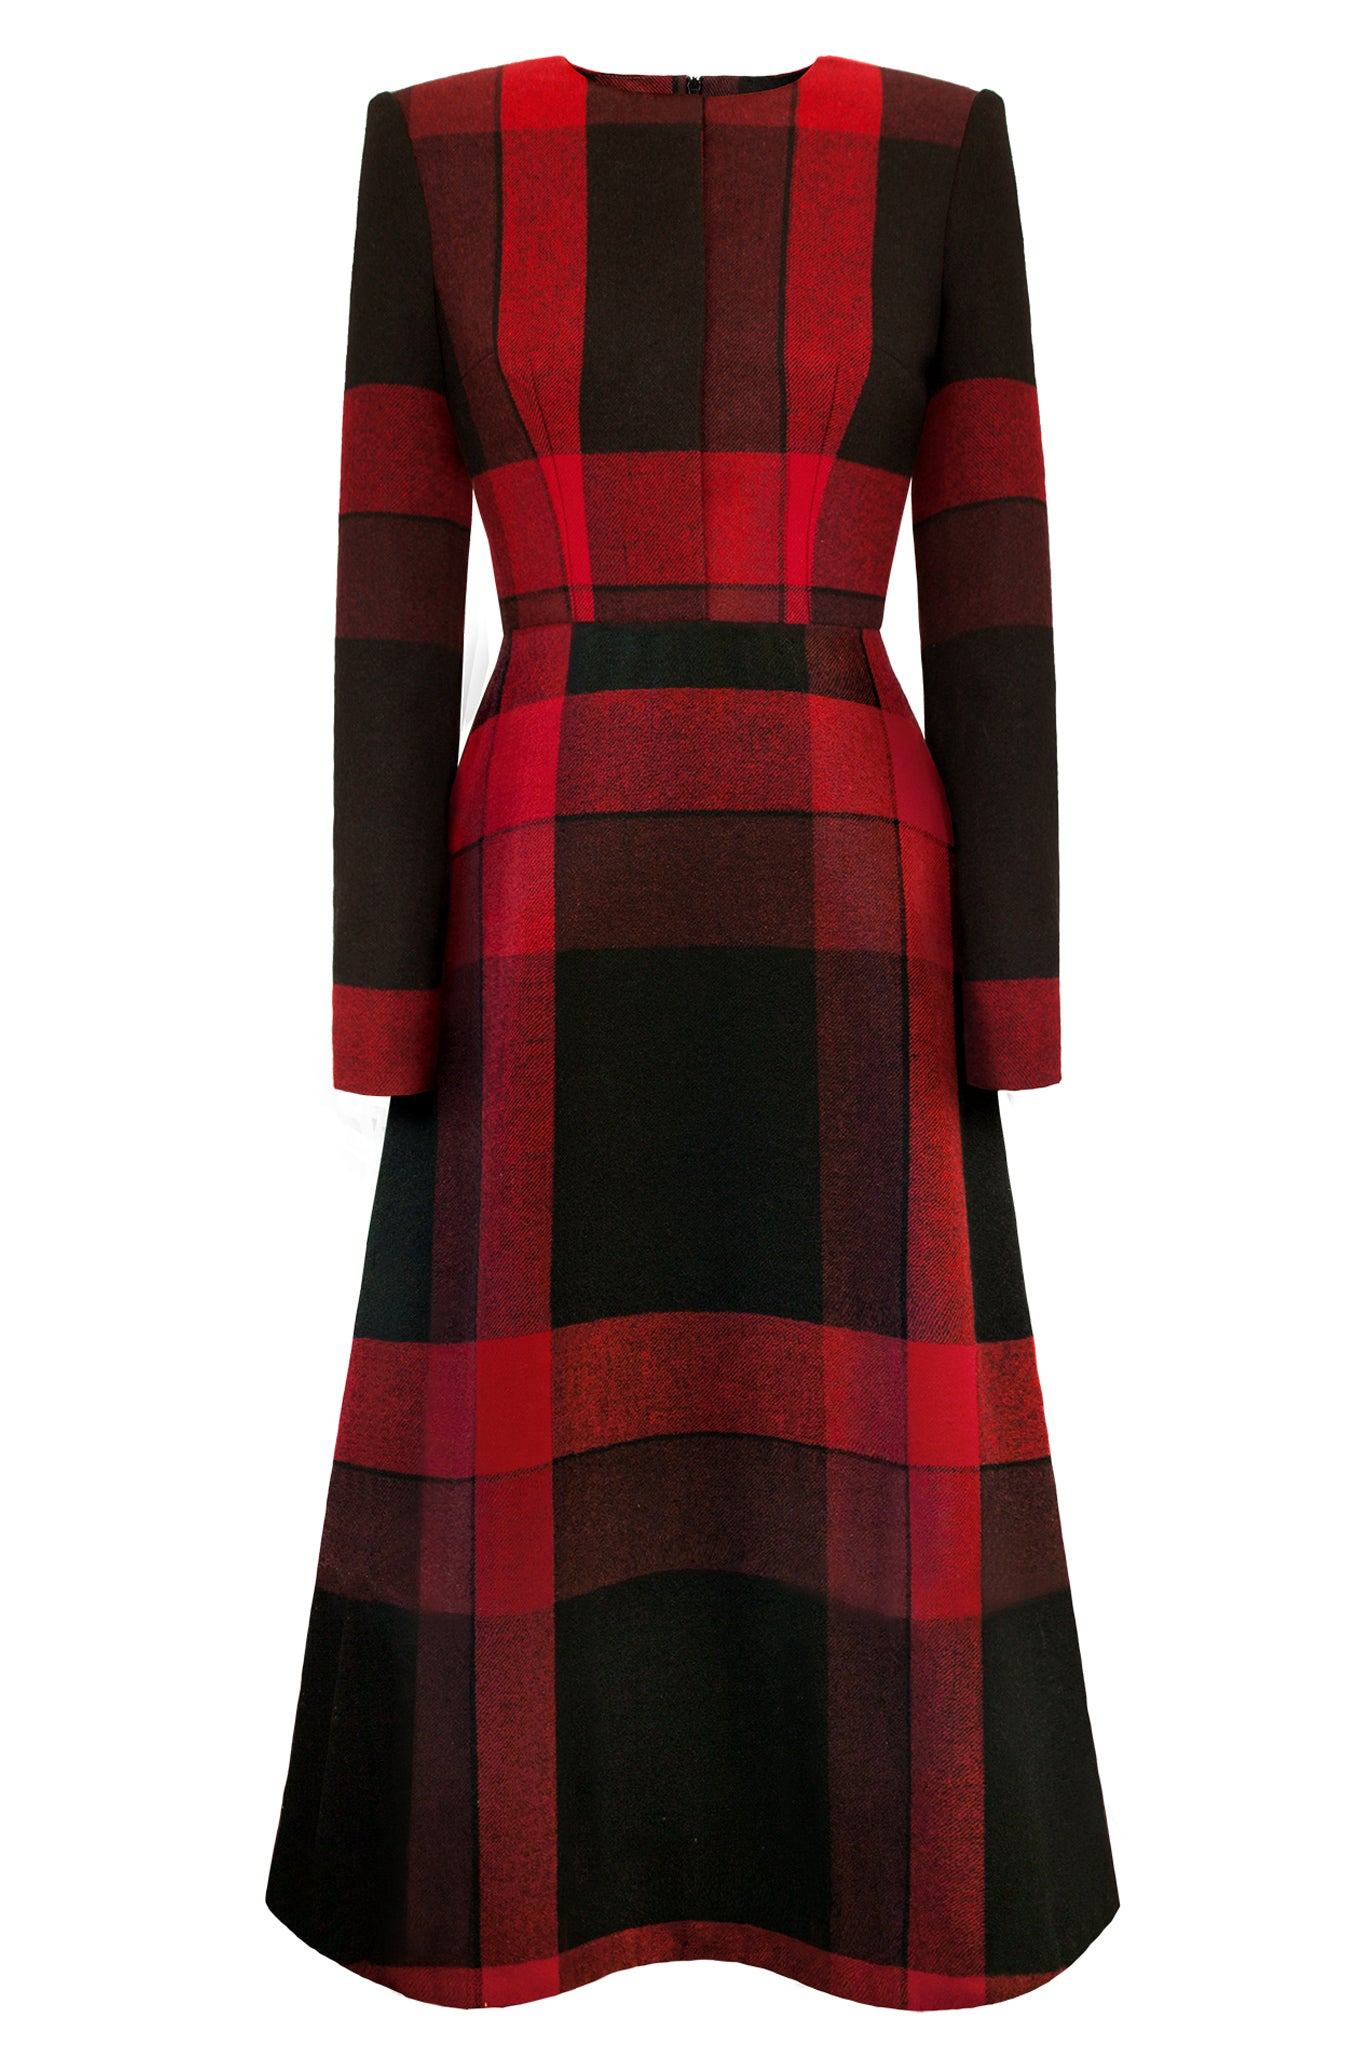 CIMONE AW17 3/4 length red and black wool tartan dress, first seen on the catwalk during London Fashion Week. The perfect statement winter dress.